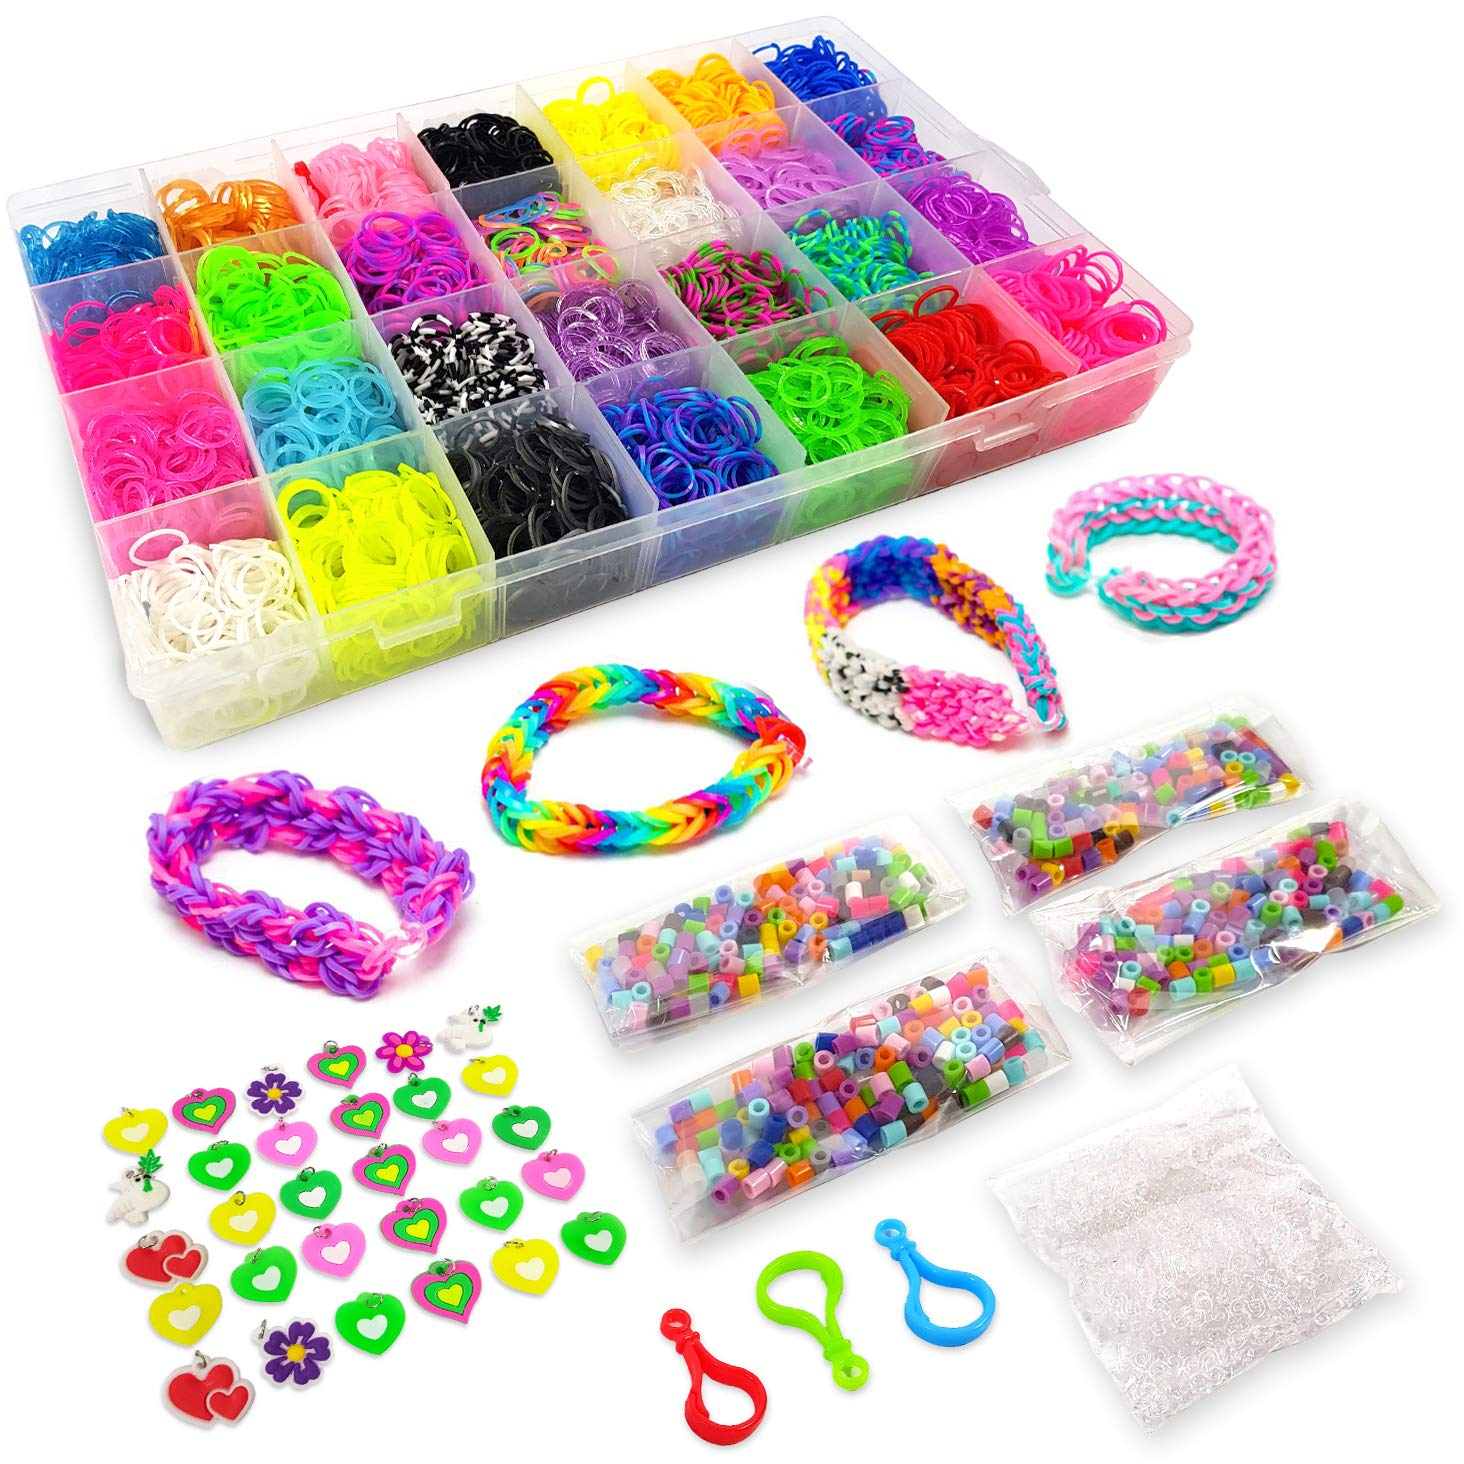 11500+ Rainbow Loom Bands Mega Refill Kit – Rubber Band Bracelet Kit for Kids – 10500 Premium Crazy Loom Rubber Bands, 30 Charms, 5 Hooks, 250 Beads, 550 Clips – DIY Crafts Making Bracelets 42 Colors Toys World Shop 4336906124